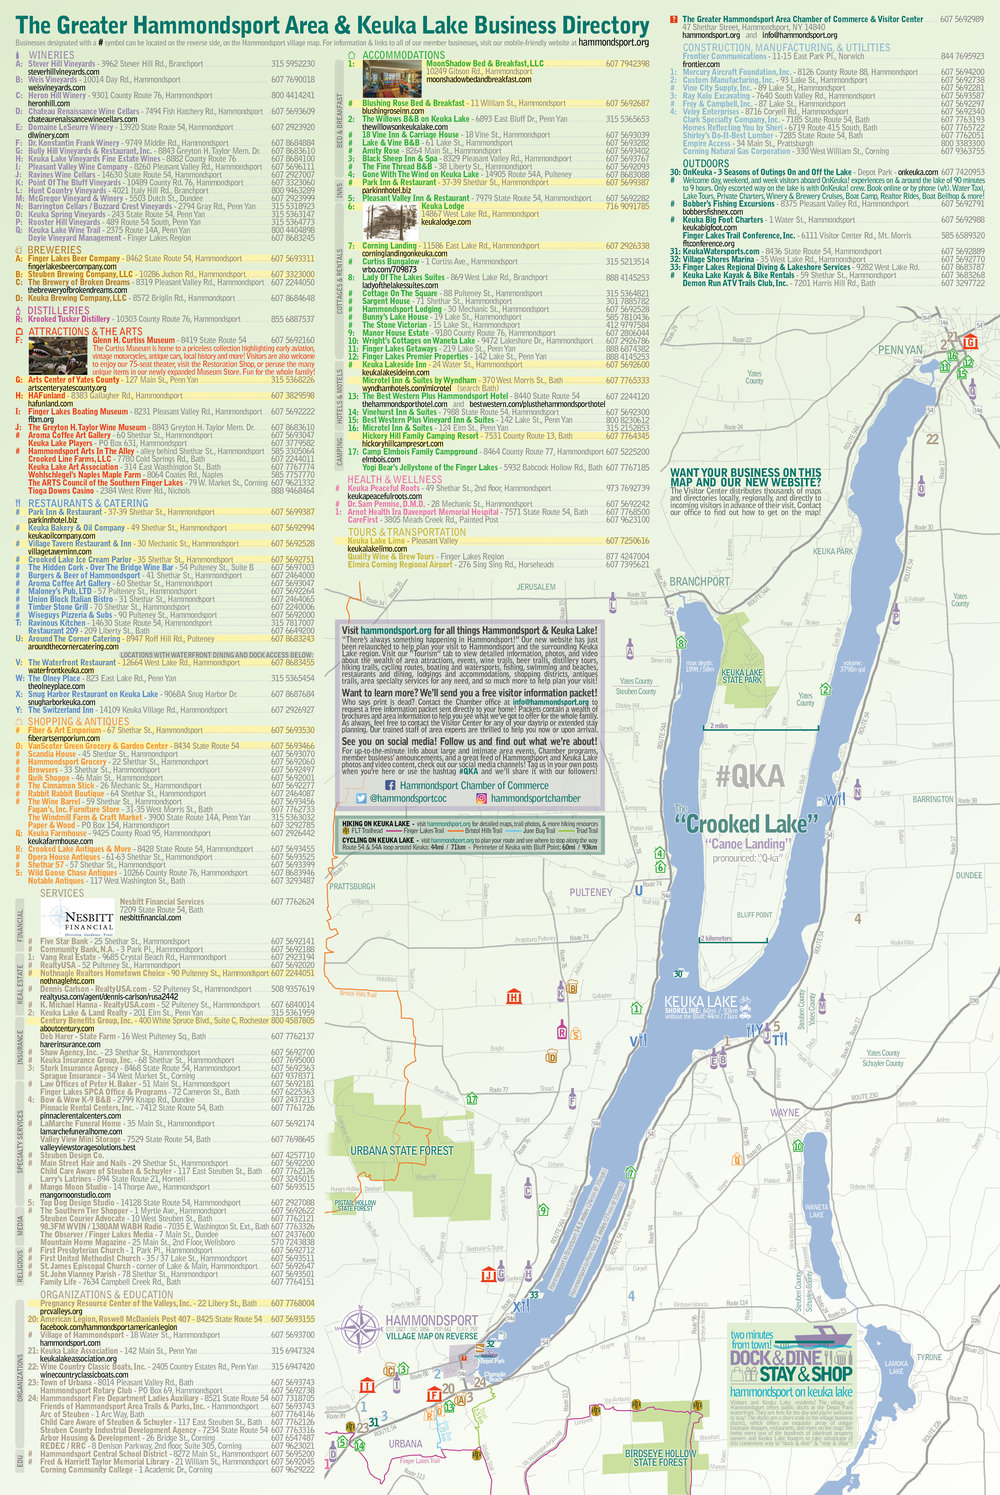 Keuka Lake area map. Click to view full-size. It's recommended that you download the file to enable high-resolution viewing.